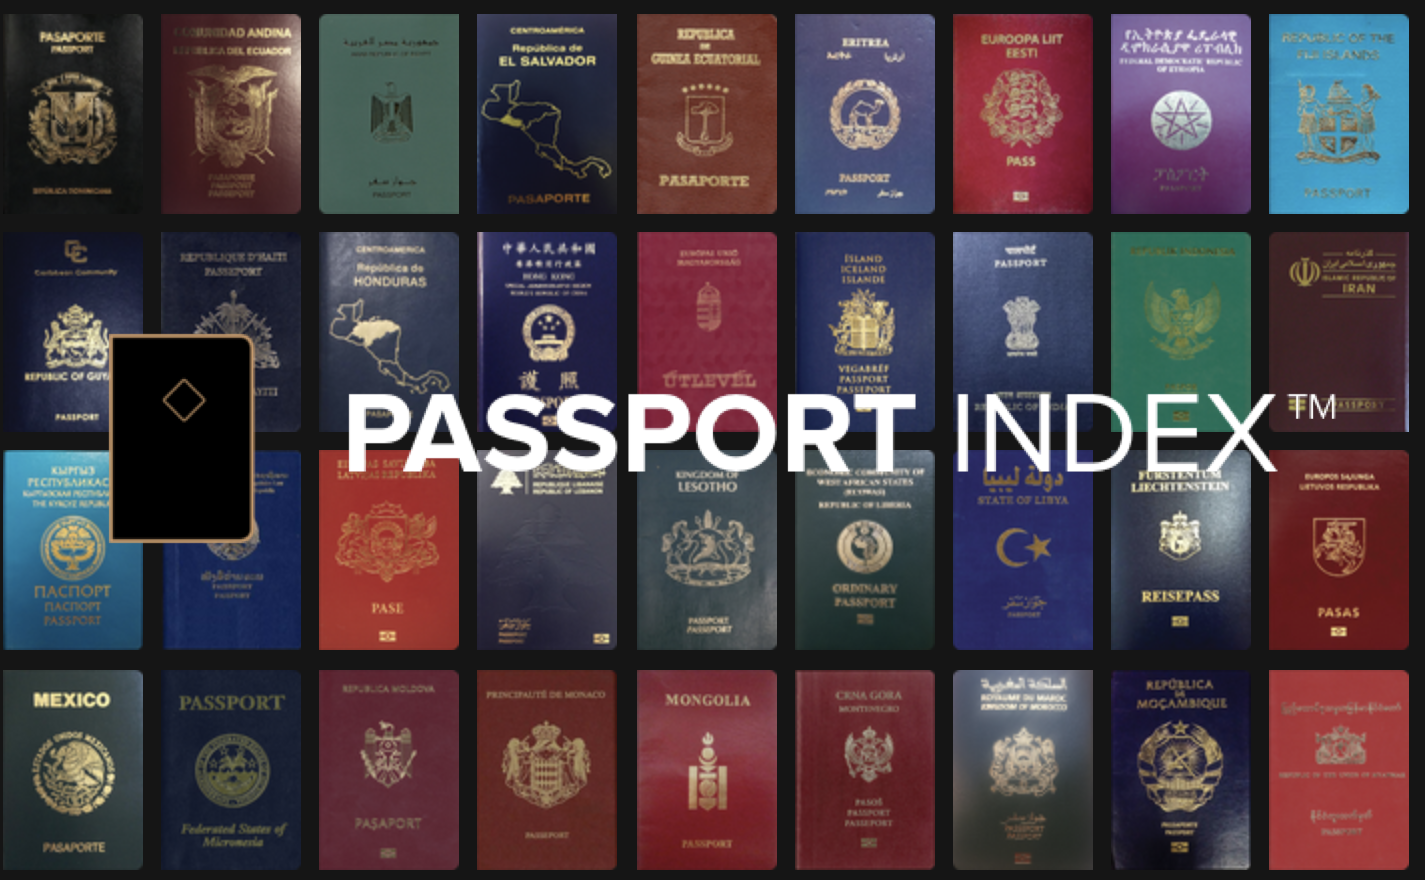 The Passport Index-Index - An Overview of Passport Rankings